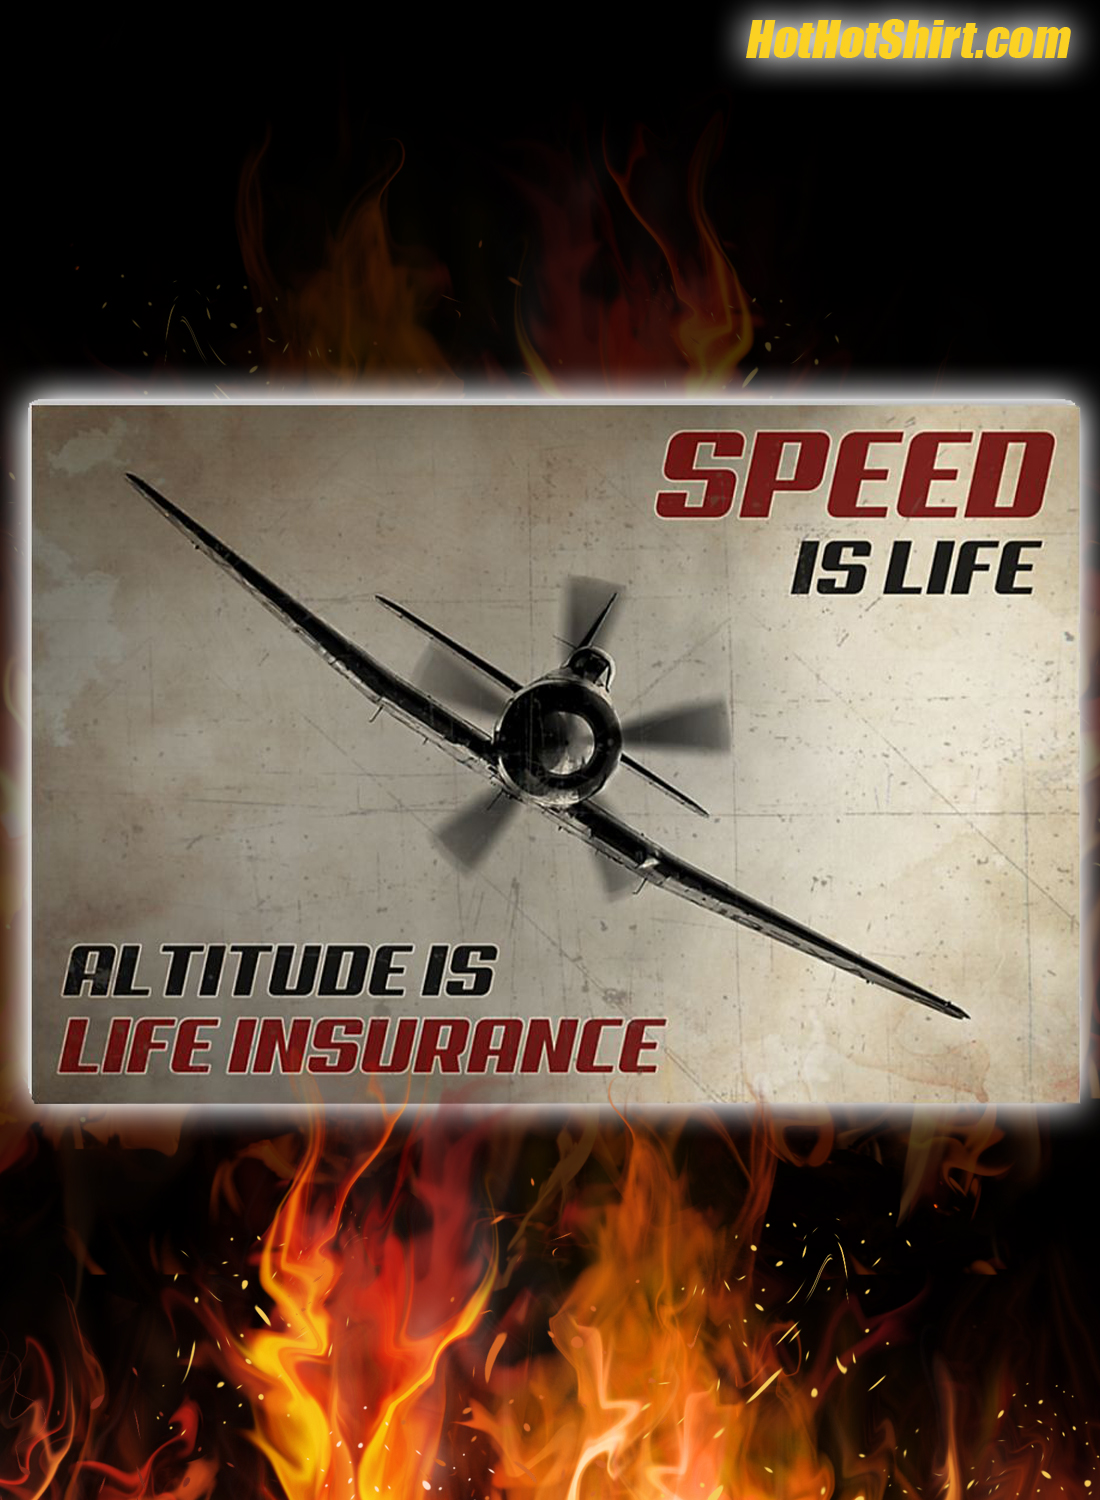 Airplane Speed is life altitude is life insurance poster